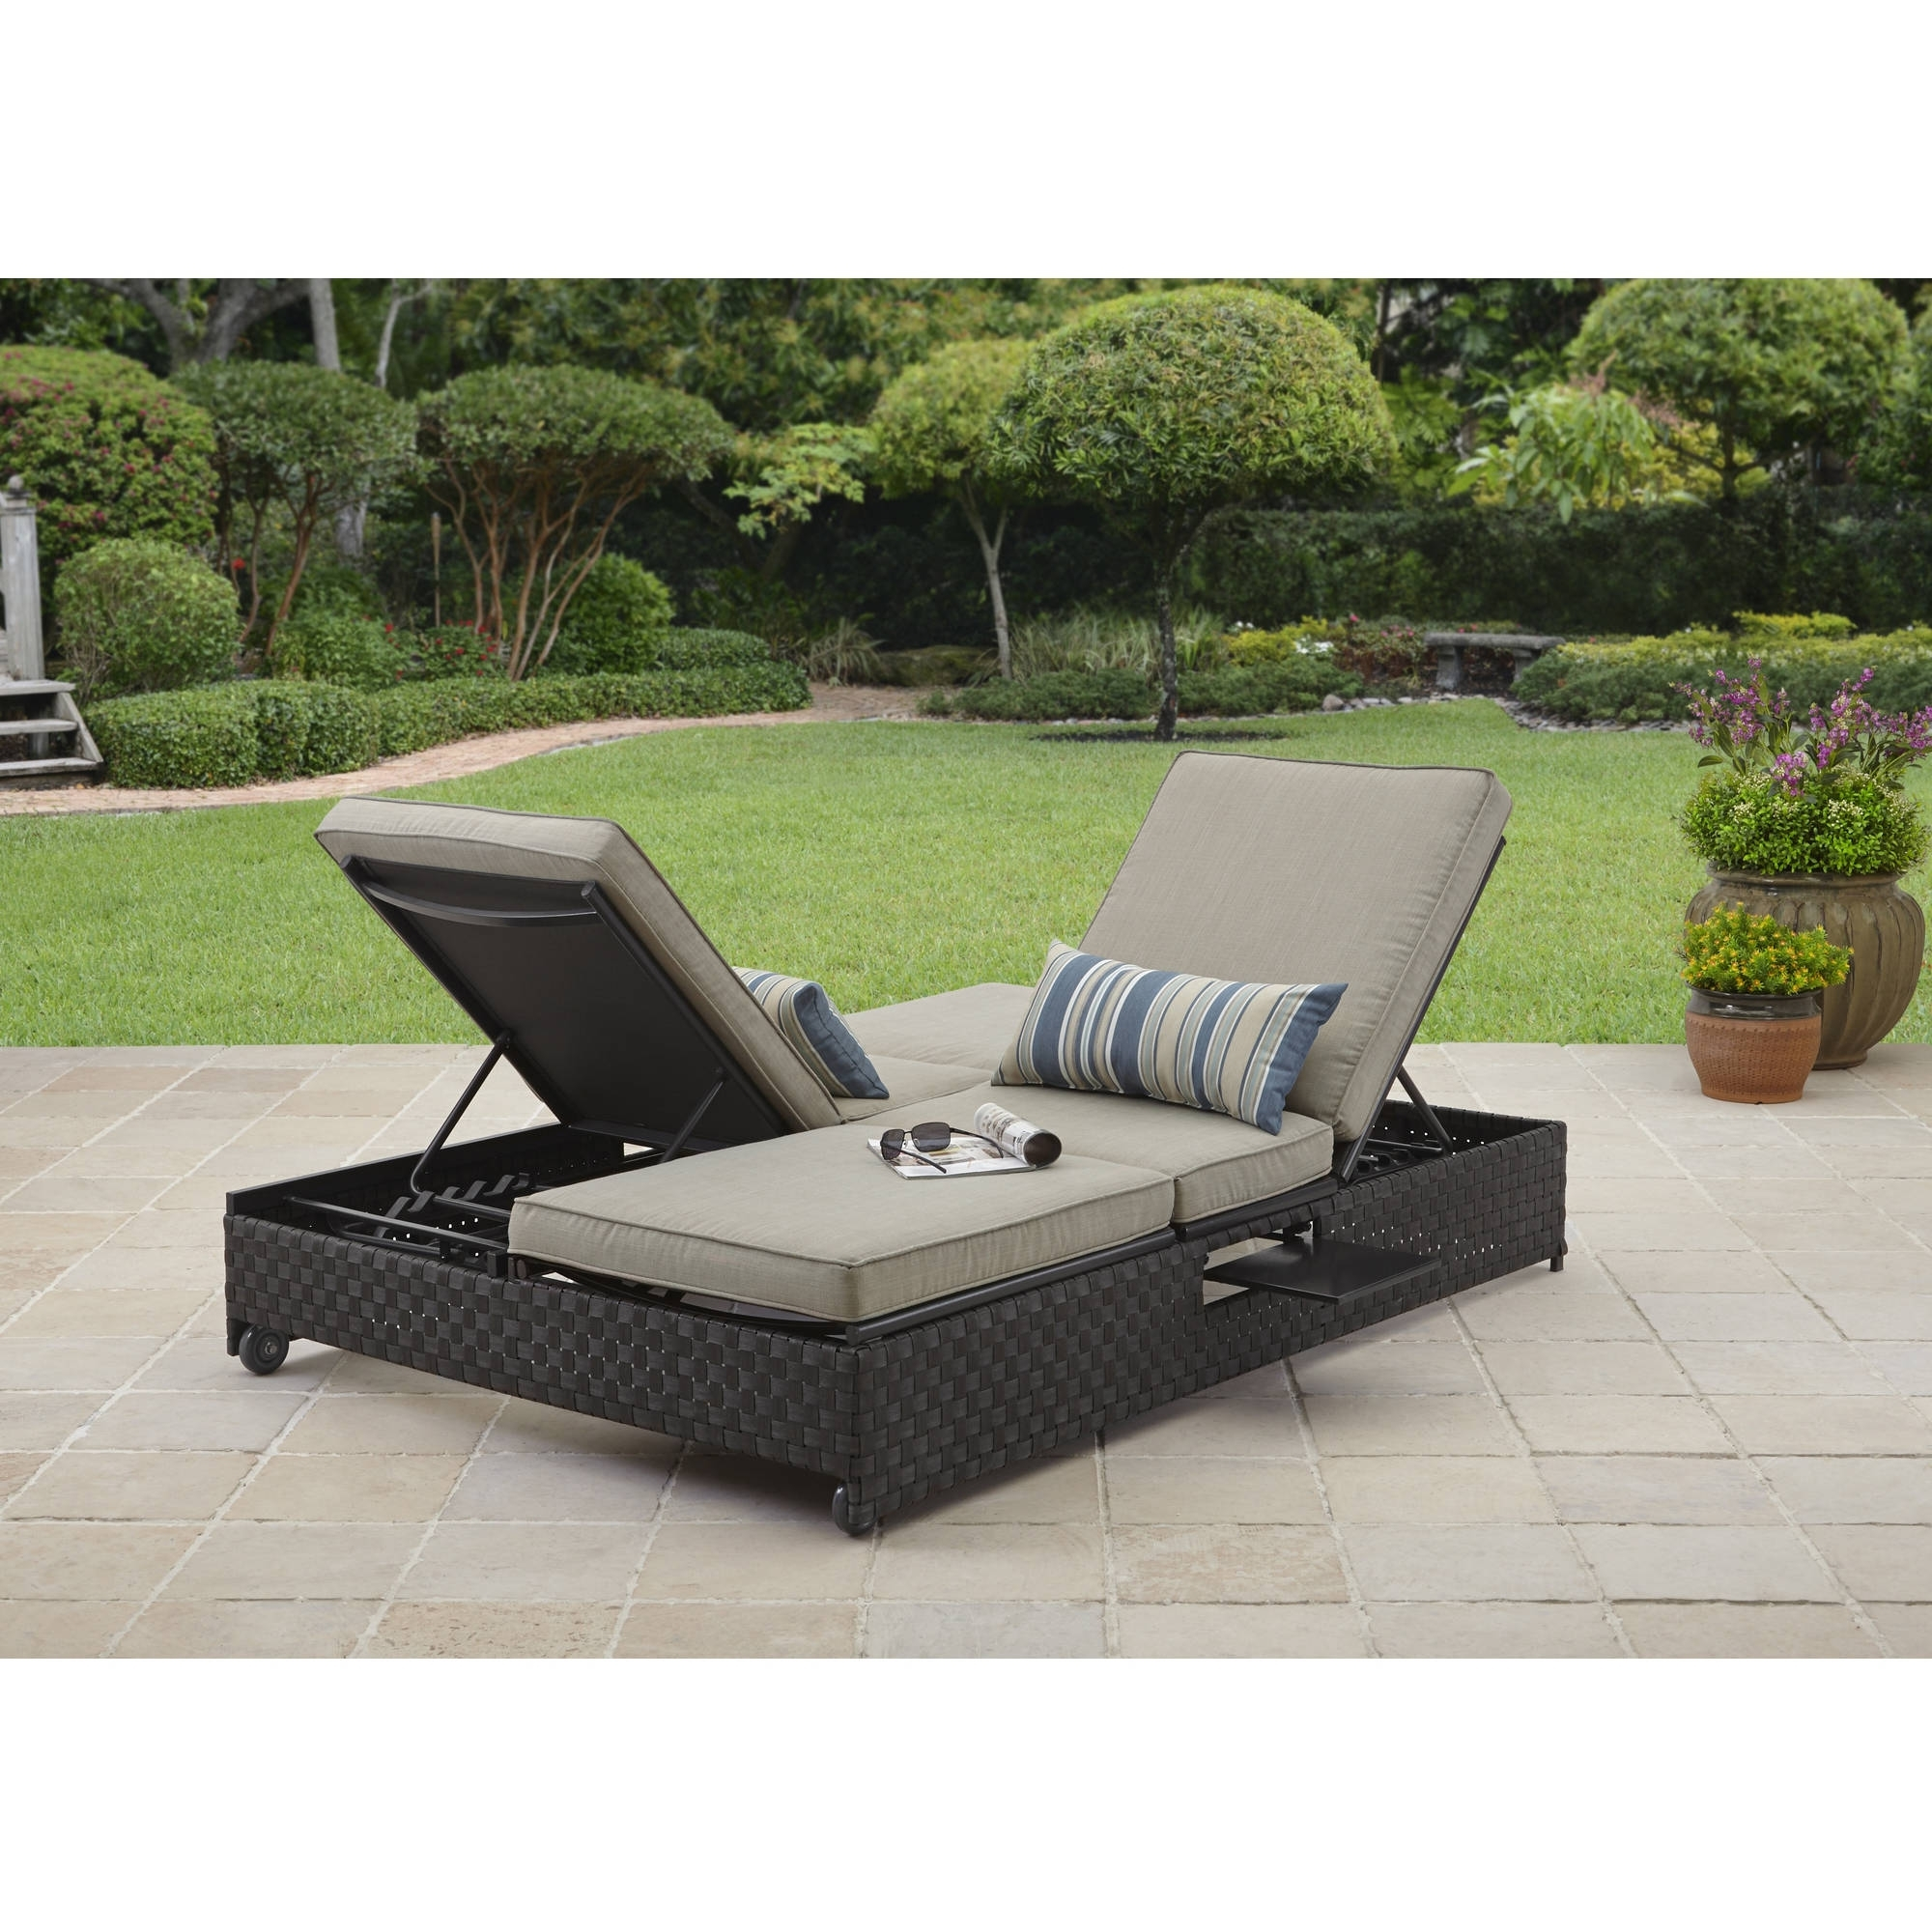 Favorite Better Homes And Gardens Avila Beach Double Lounger/sofa – Walmart Inside Walmart Chaise Lounge Chairs (View 4 of 15)